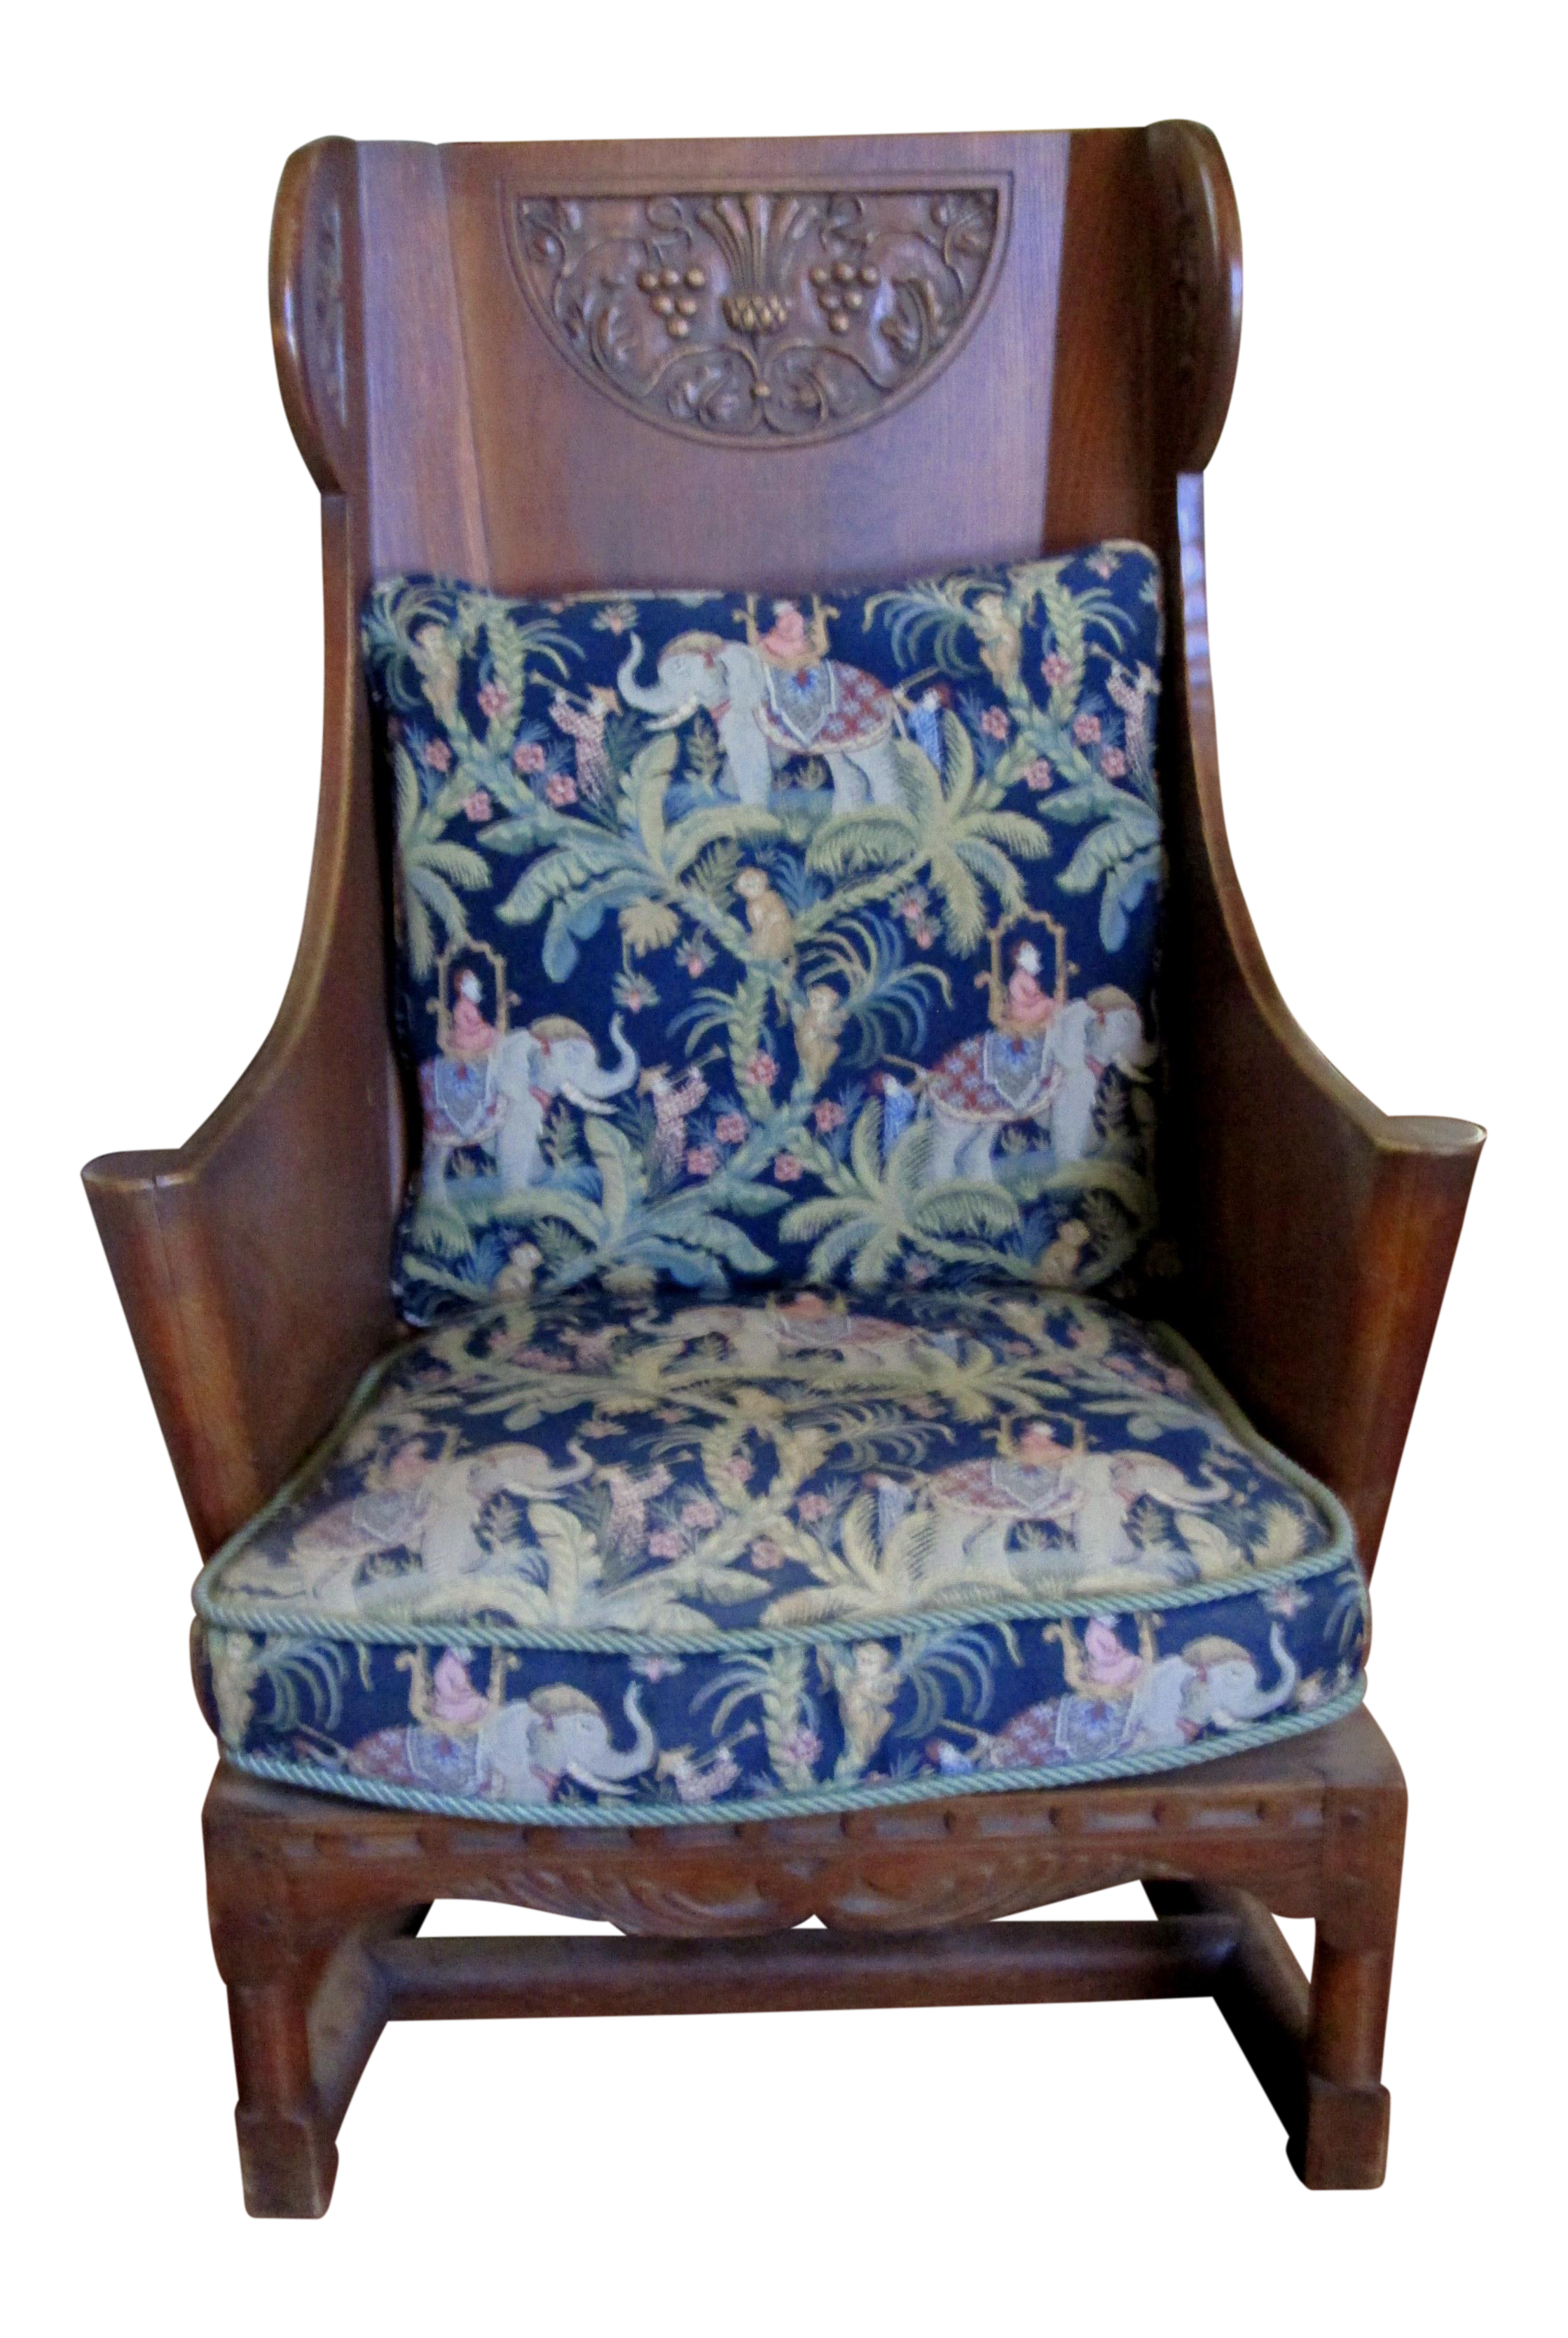 Antique Ornate Carved Wooden Wingback Chair W/ Monkey U0026 Elephant  Upholstered Cushions   Image 1